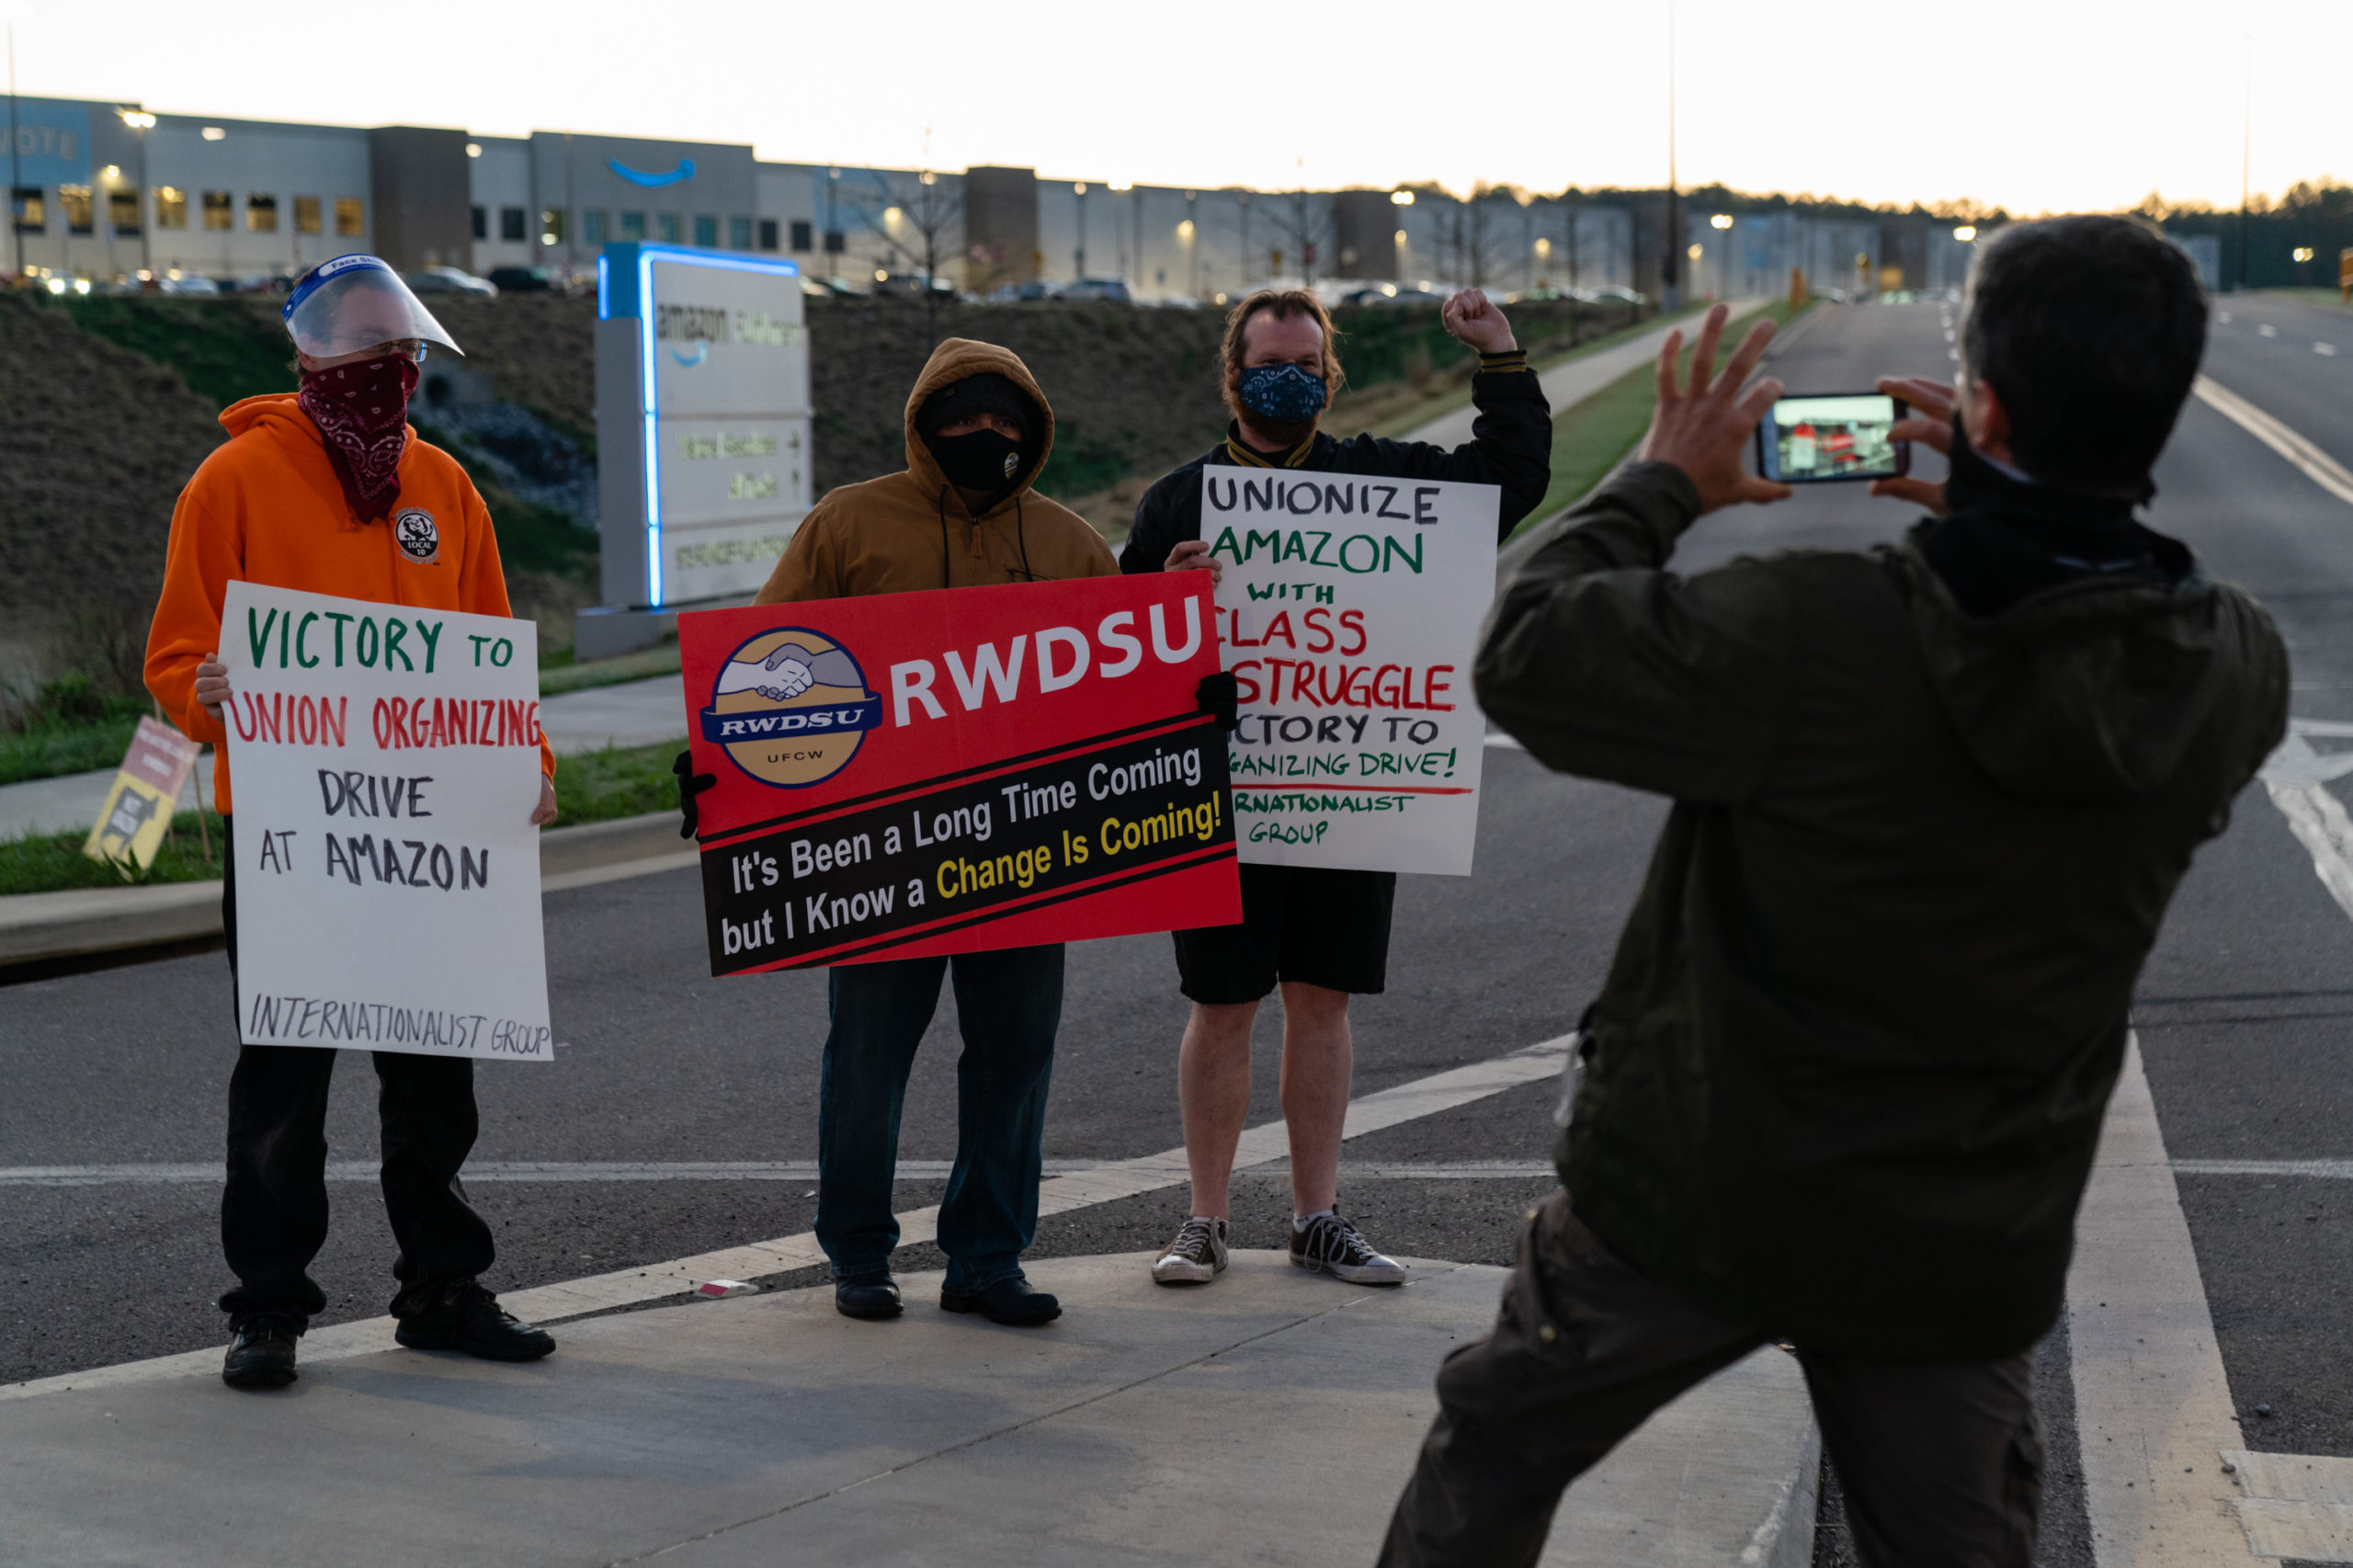 Supporters of the RWDSU unionization effort take a photo outside the Amazon fulfillment warehouse in Bessemer, Alabama on Monday. (Elijah Nouvelage/Getty Images)